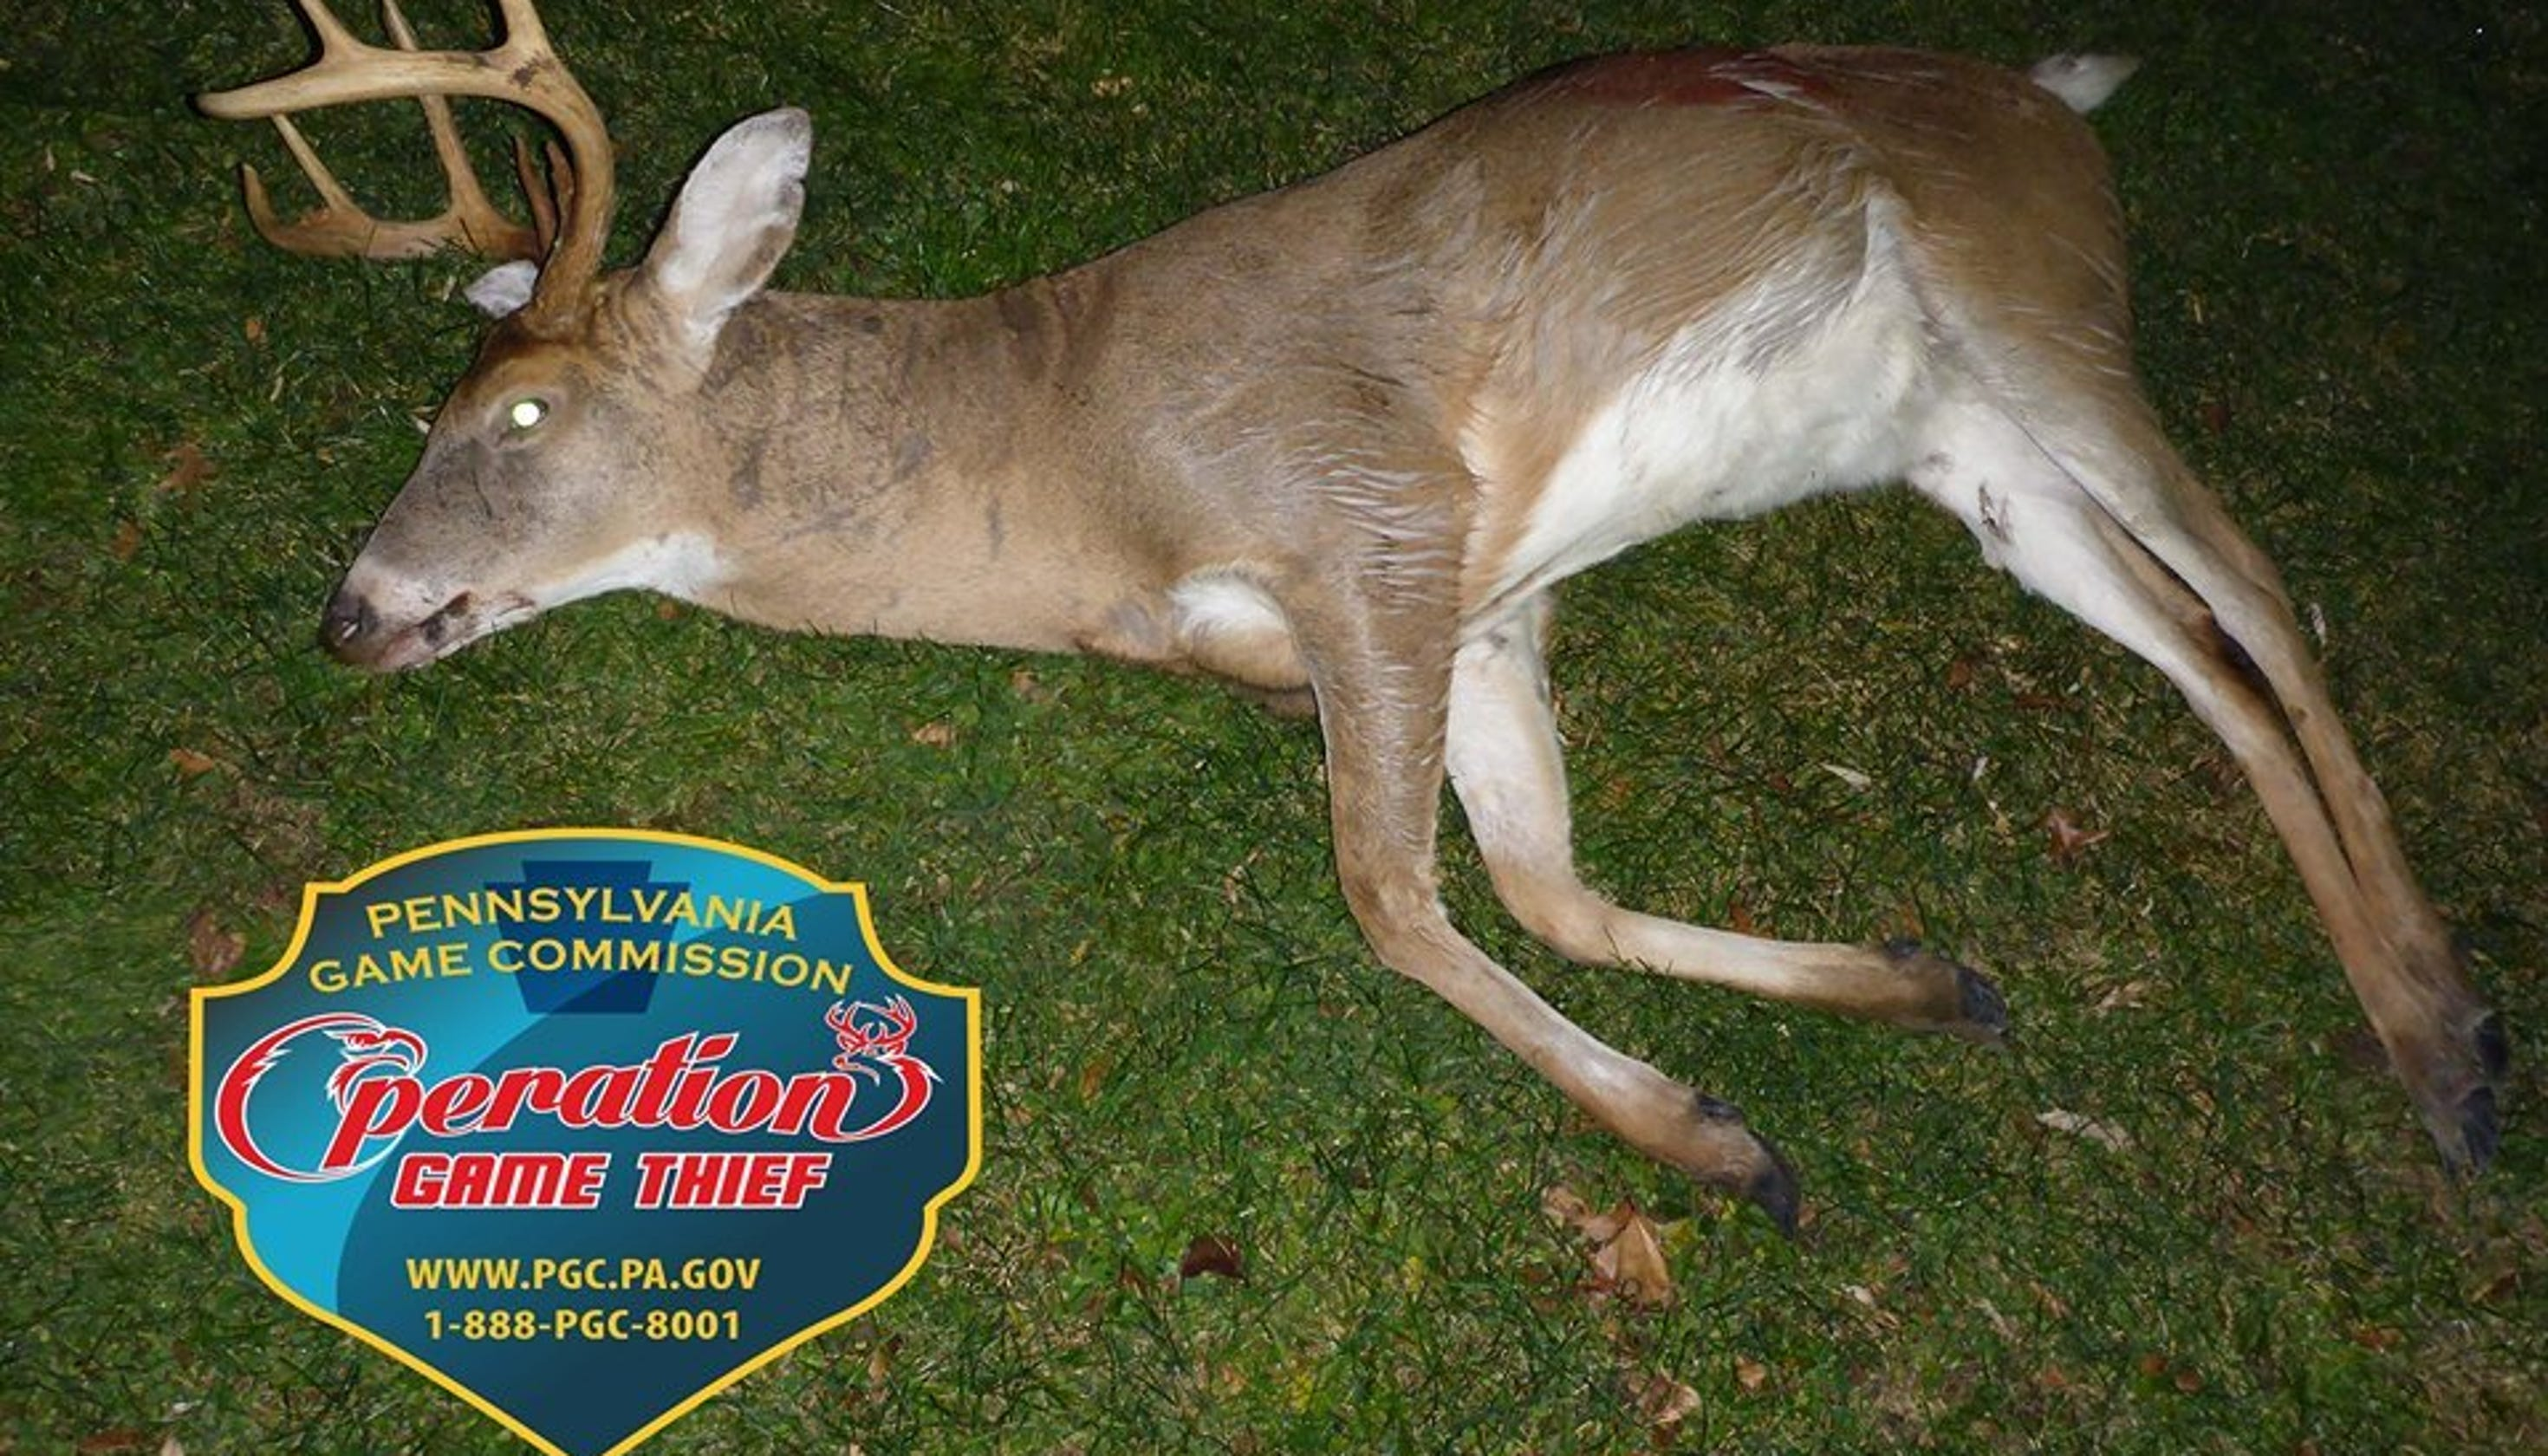 Pa  Game Commission says 8-point buck killed illegally in